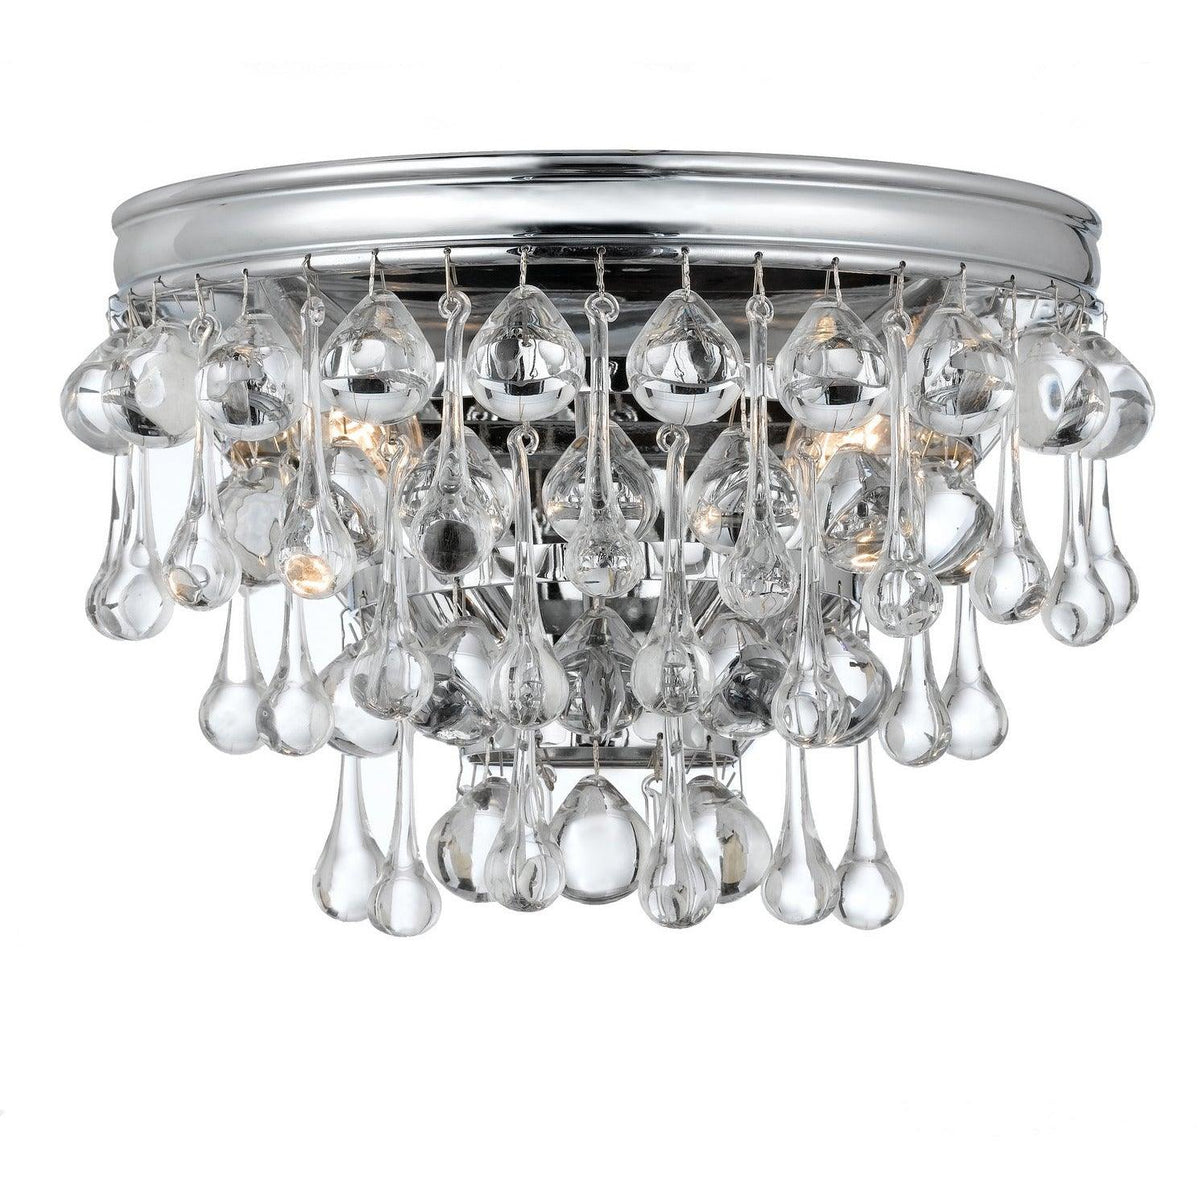 Crystorama - 132-CH - Two Light Wall Mount - Calypso - Polished Chrome